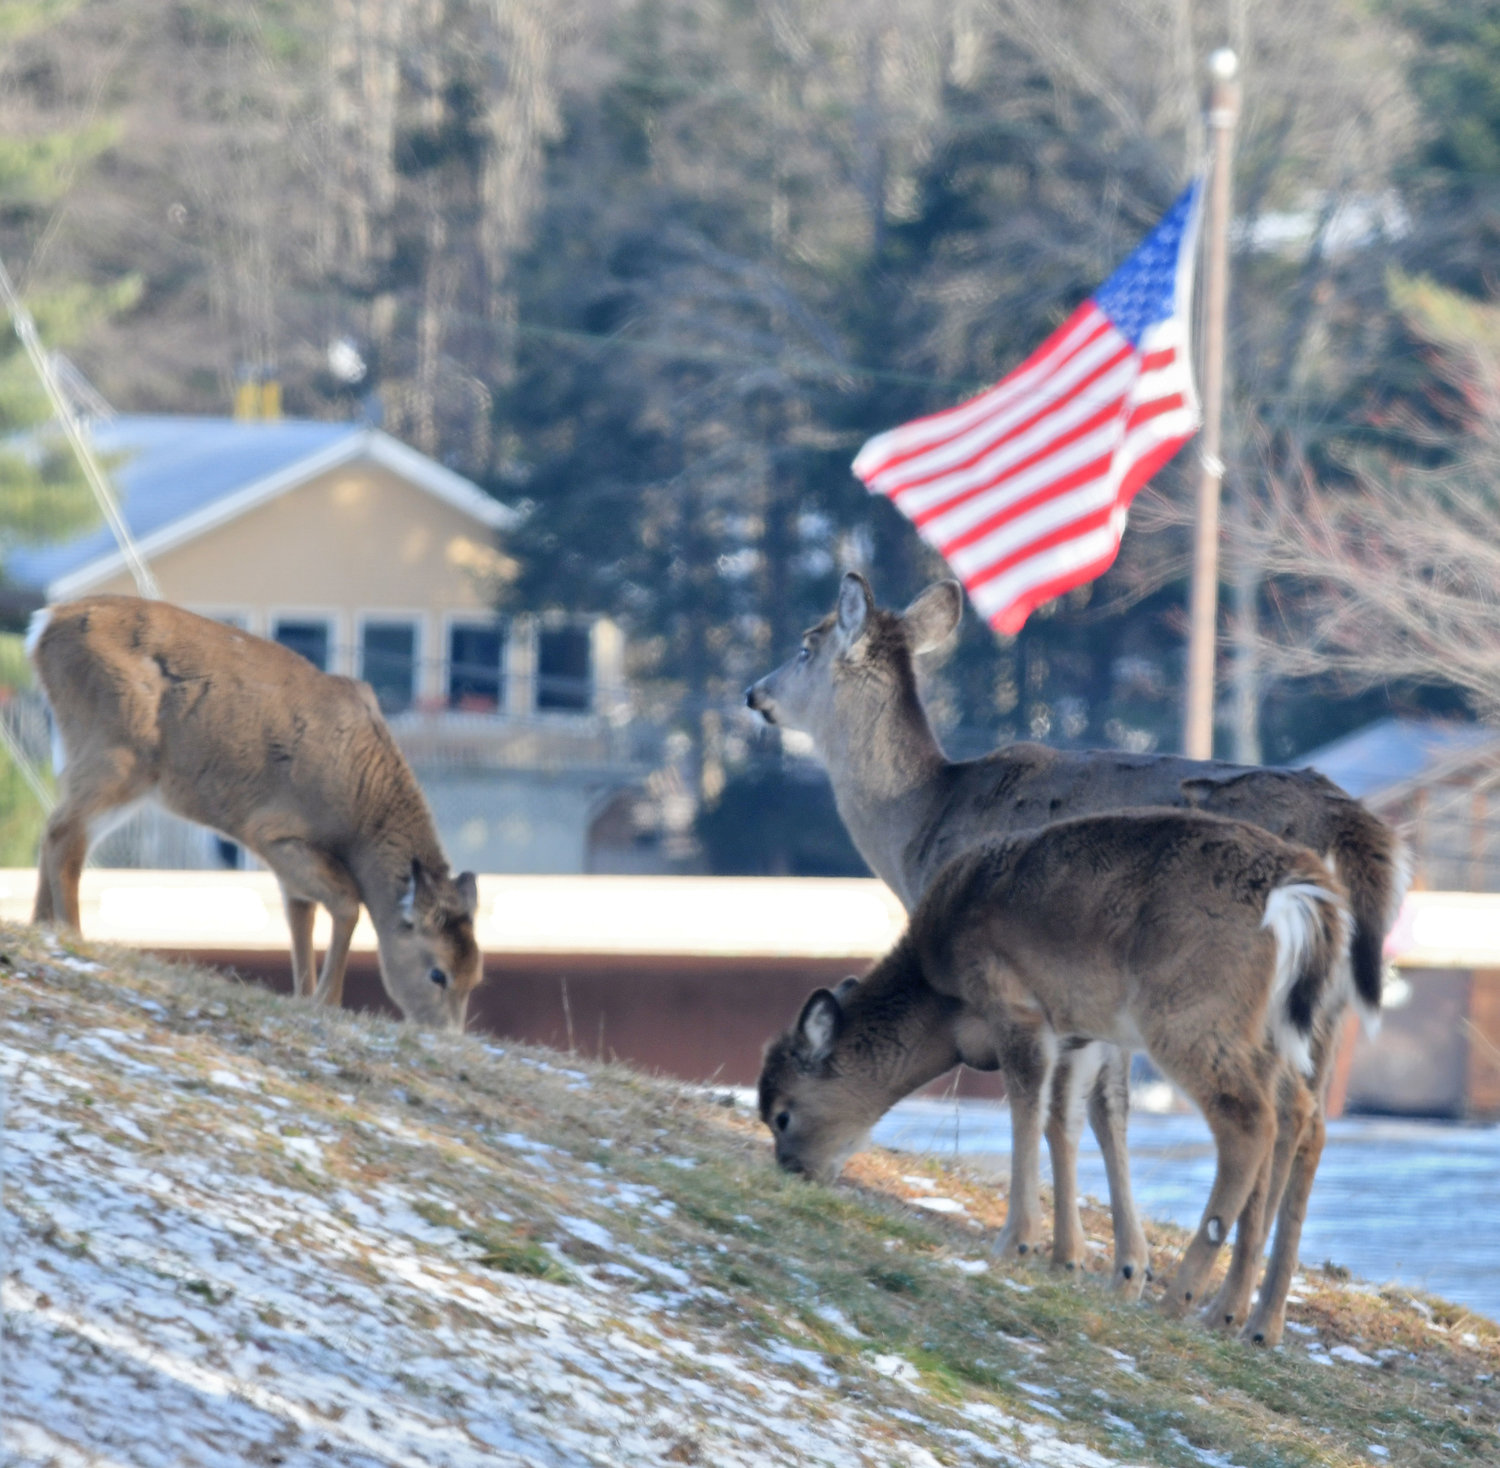 PATRIOTIC DEER — A trio of deer much on an open grassy area with a flag nearby in the village of Old Forge Wednesday afternoon.